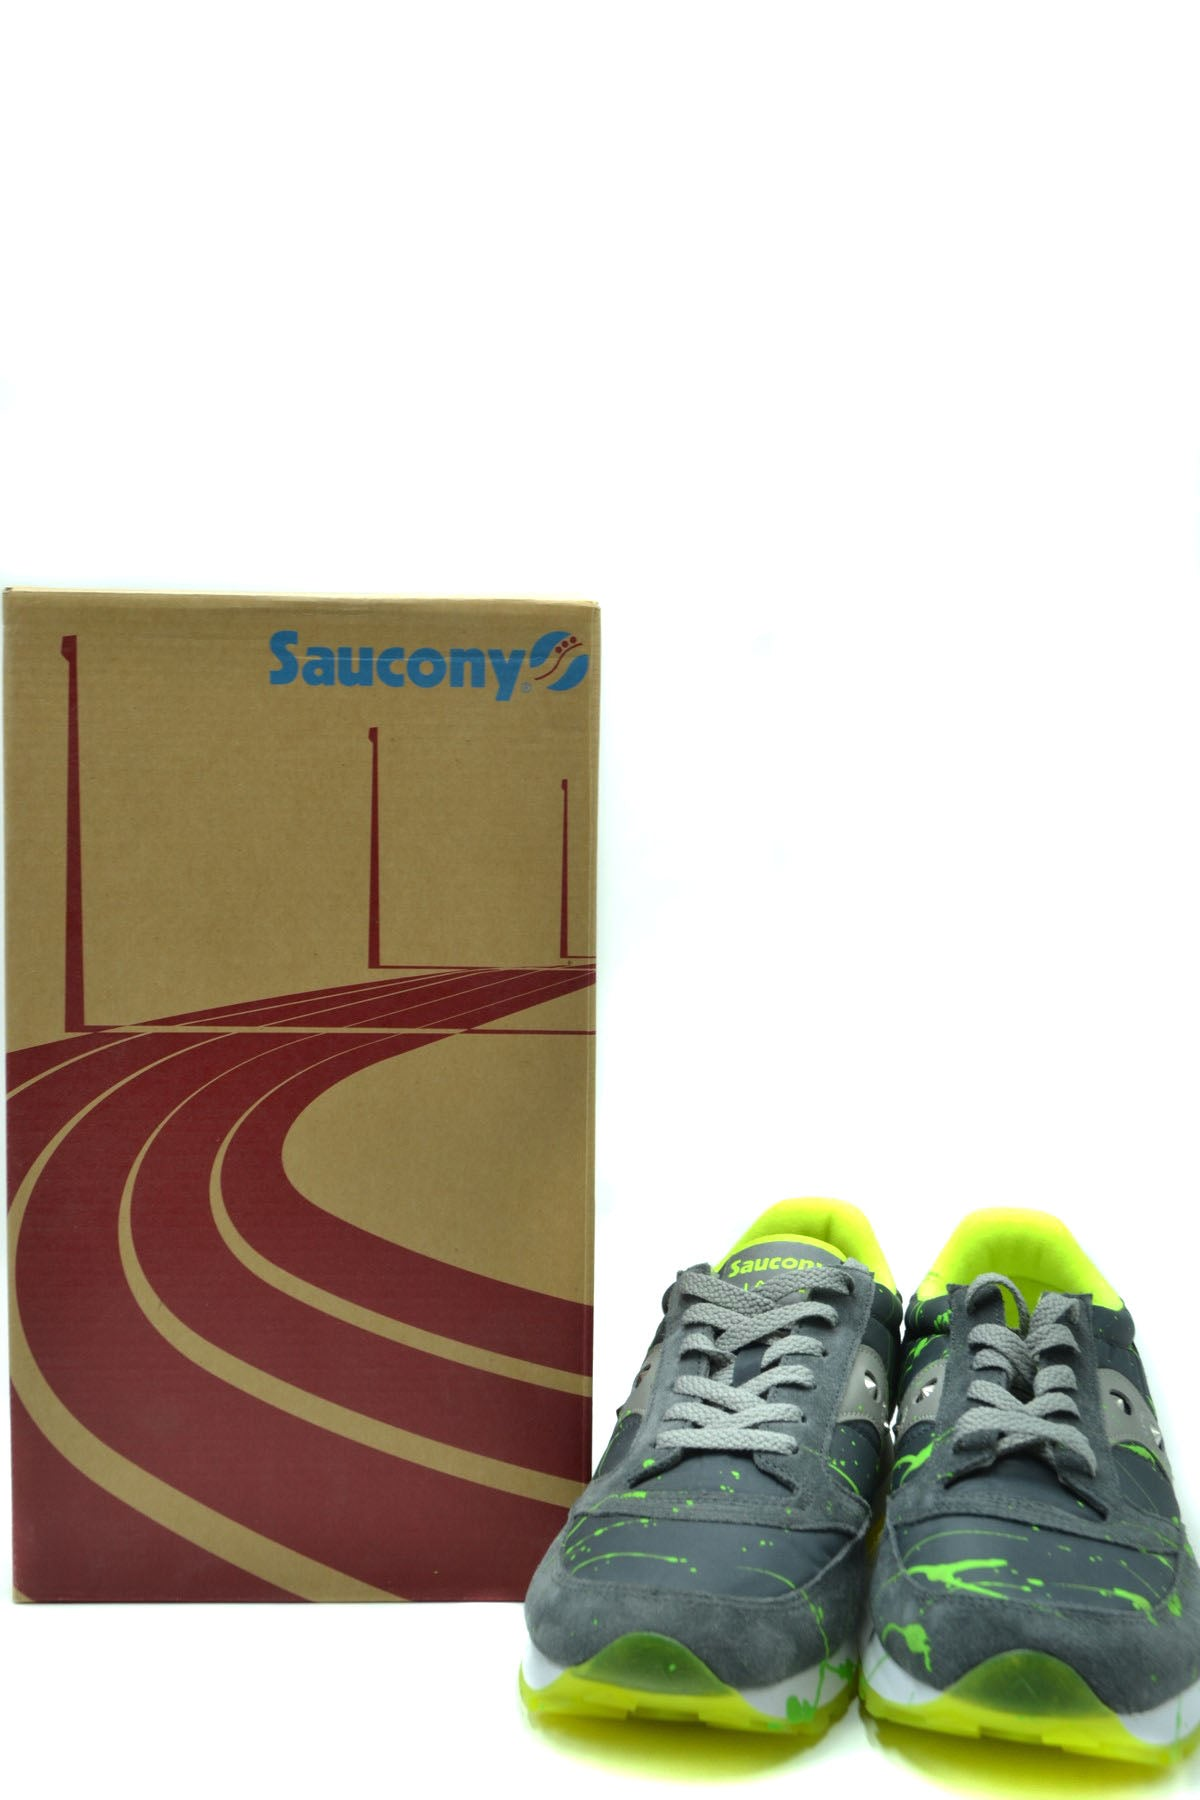 Shoes Saucony-Sports & Entertainment - Sneakers-Product Details Manufacturer Part Number: Jazz OriginalYear: 2020Composition: Chamois 50%, Nylon 50%Size: EuGender: ManMade In: ChinaSeason: Fall / WinterType Of Accessory: ShoesMain Color: GrayTerms: New With Label-Keyomi-Sook